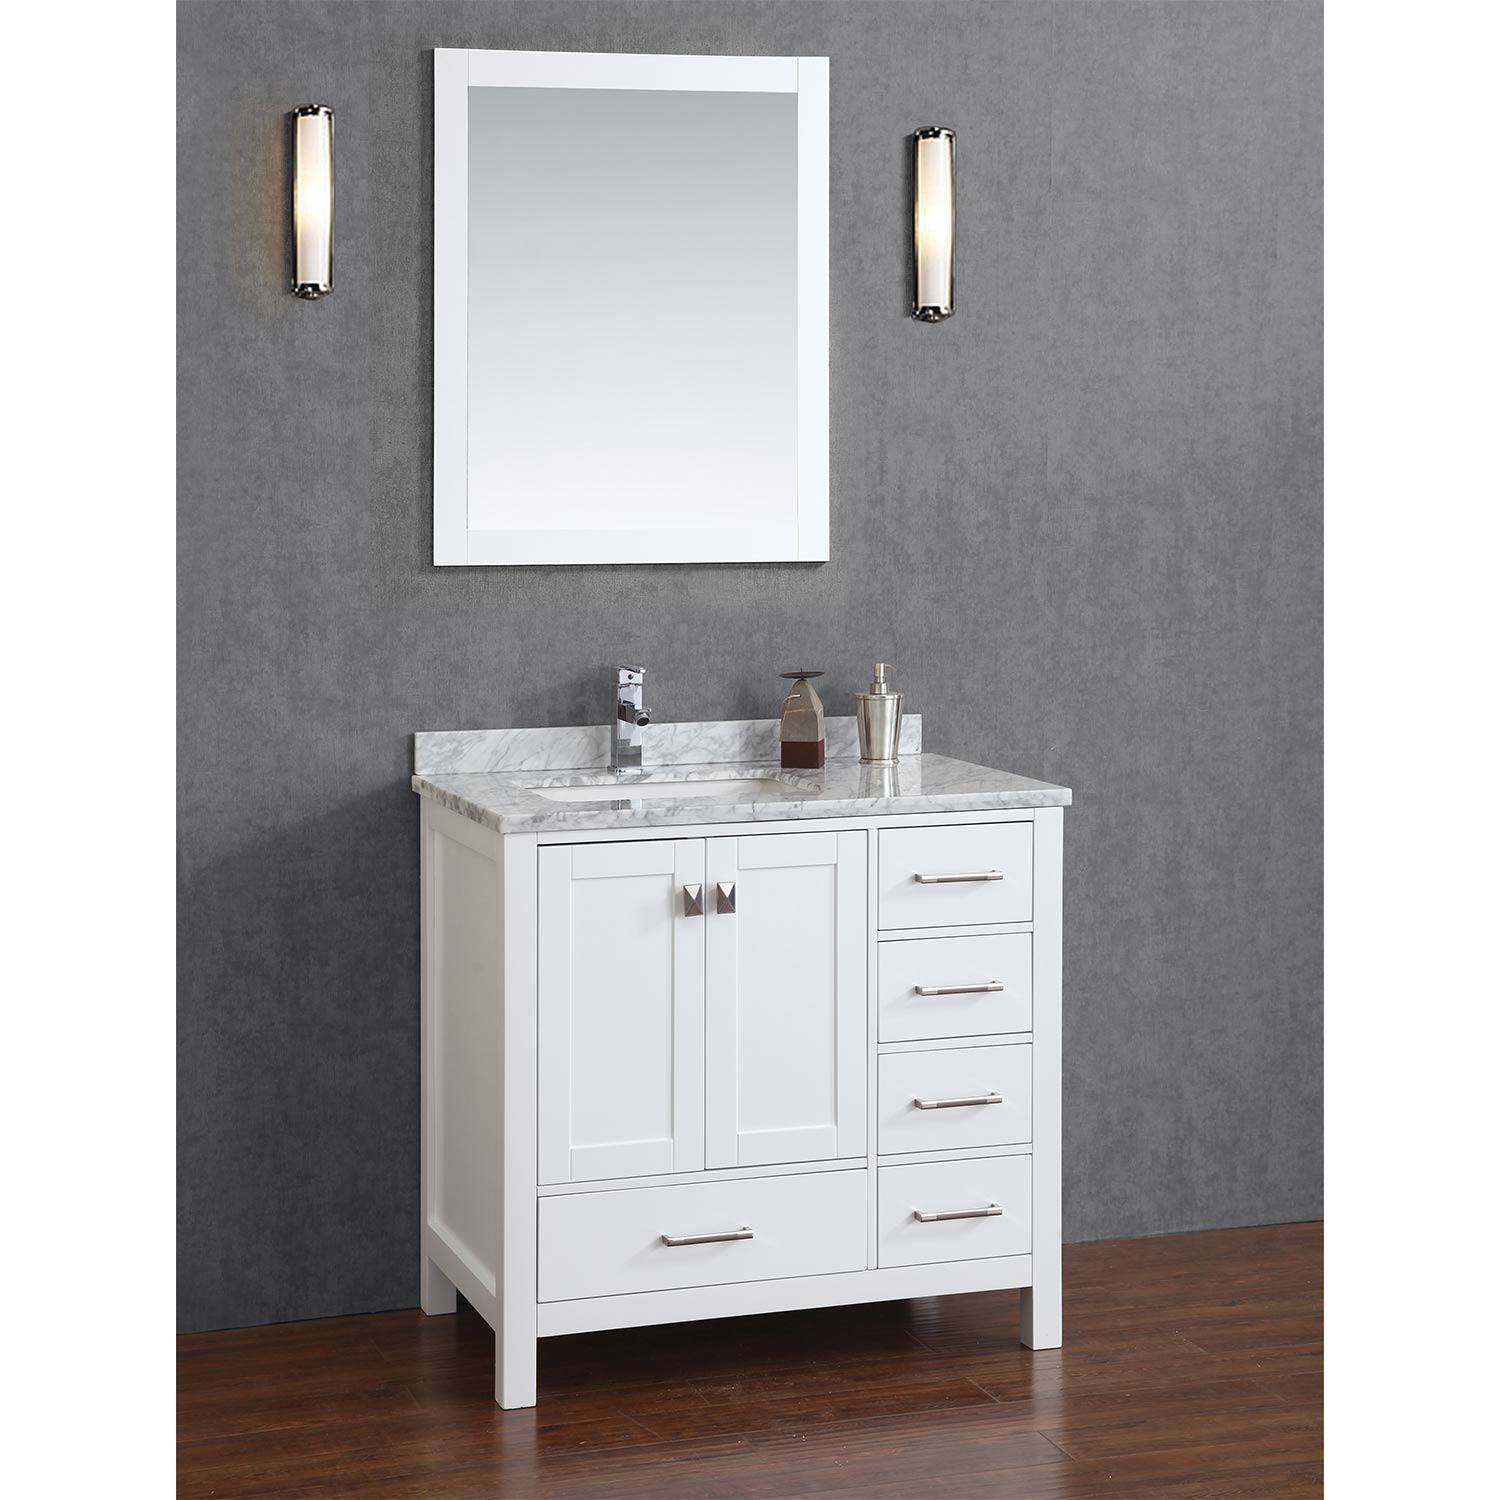 Buy Vincent 36 Inch Solid Wood Single Bathroom Vanity In White Hm 13001 36 Wmsq Wt